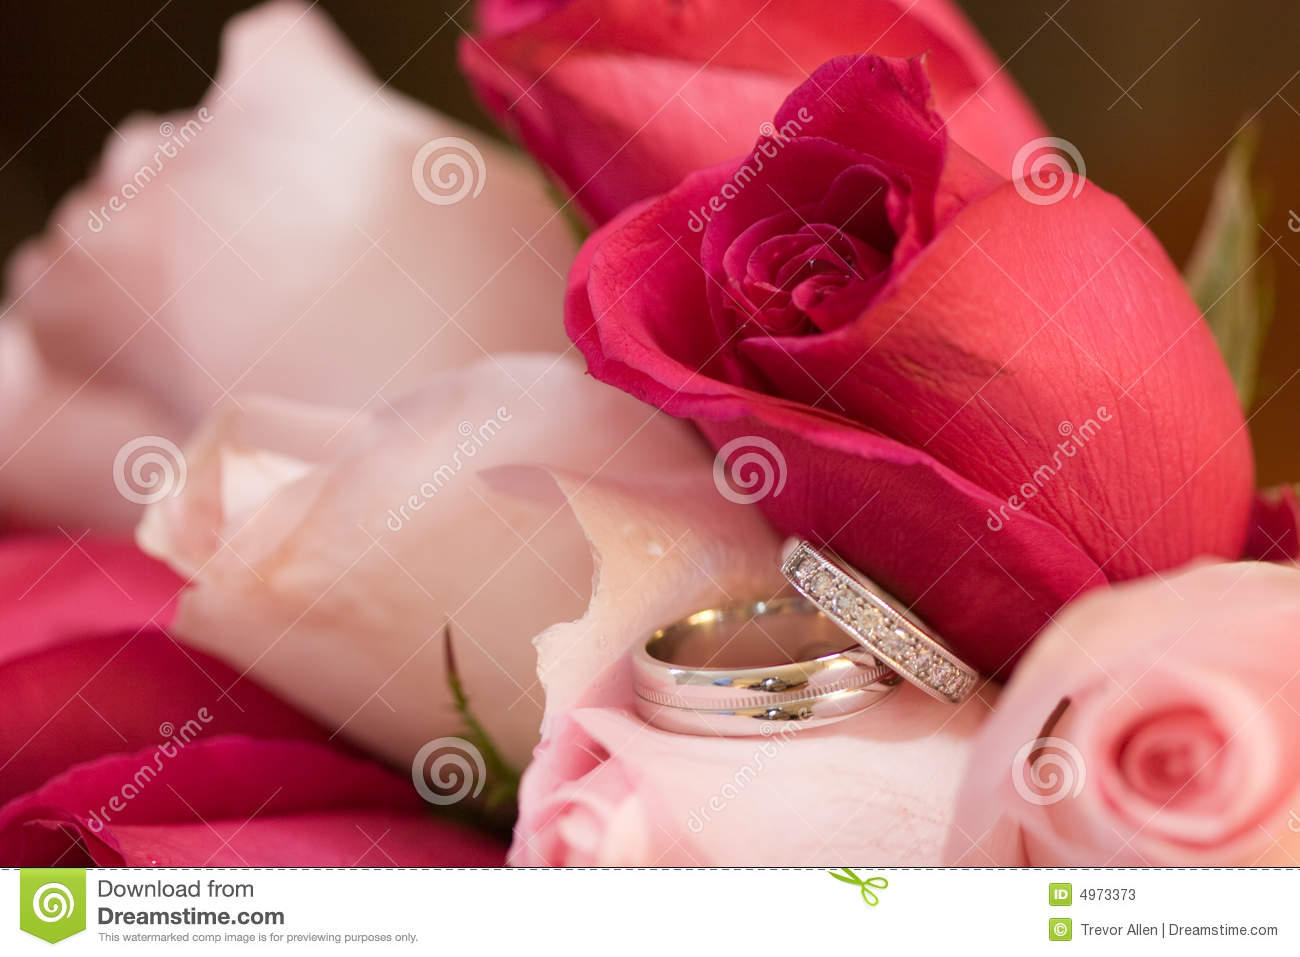 Wedding Rings in Roses stock image. Image of round, small - 4973373